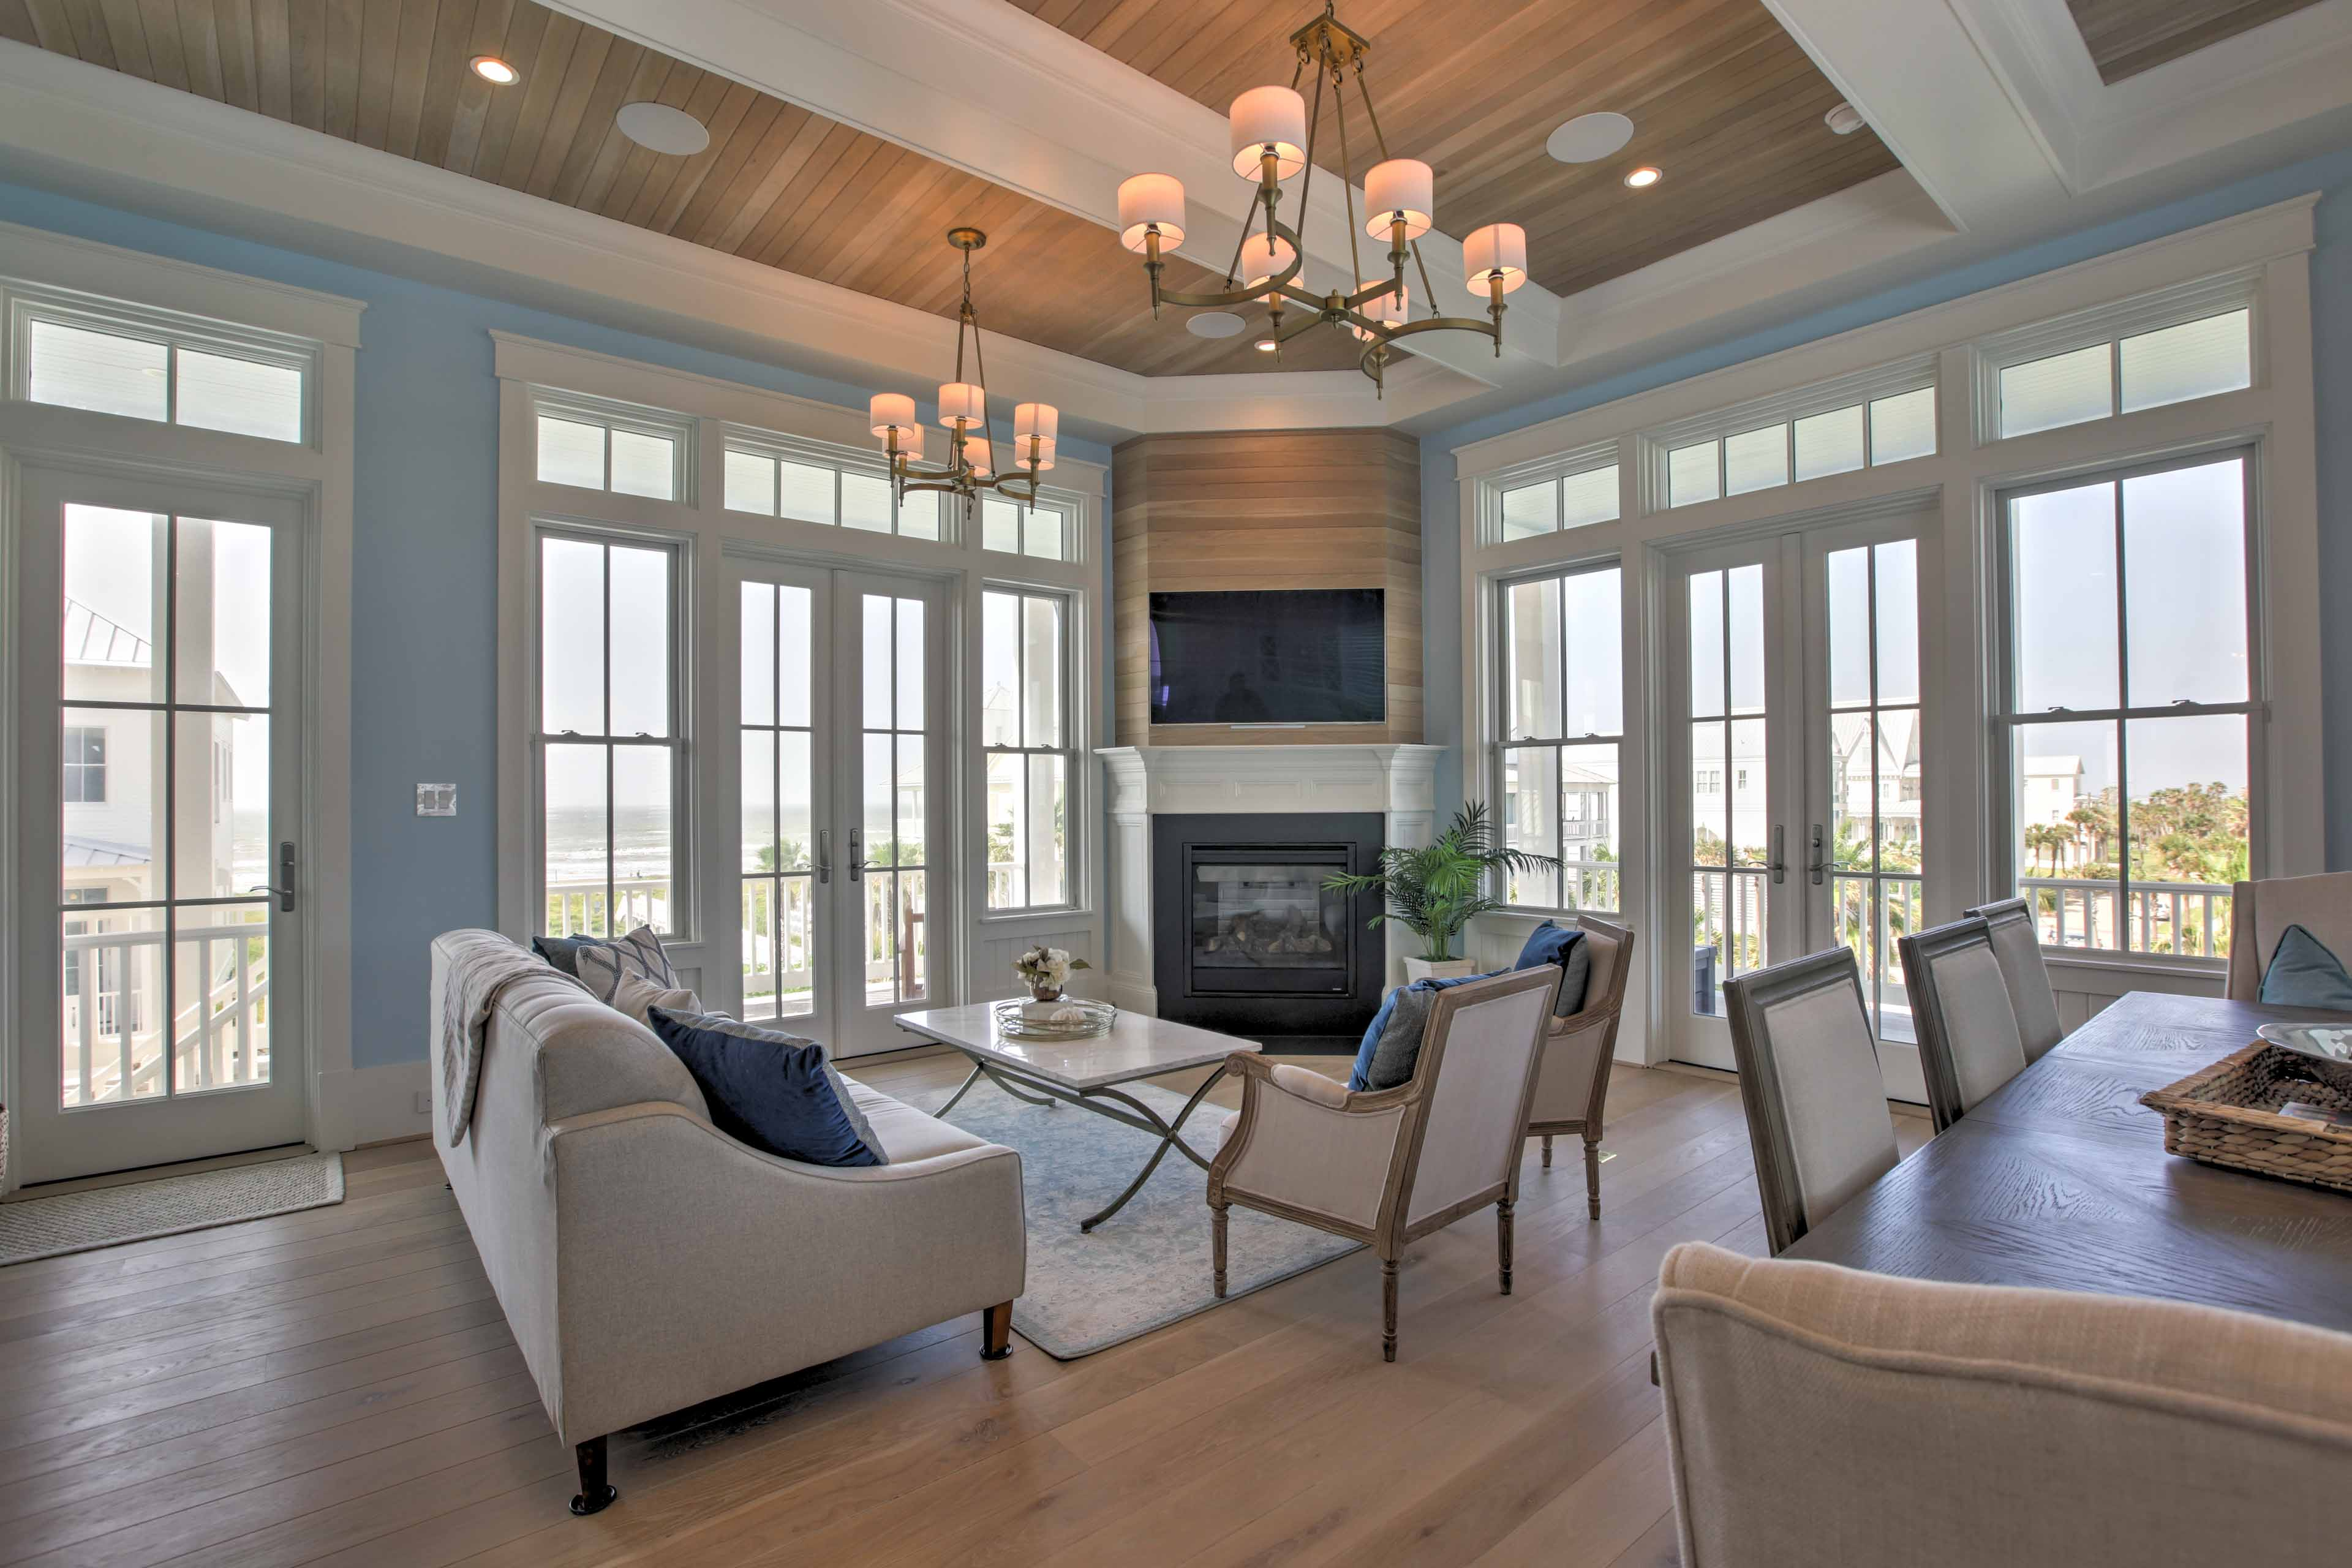 You'll find large windows and hardwood floors throughout the home.